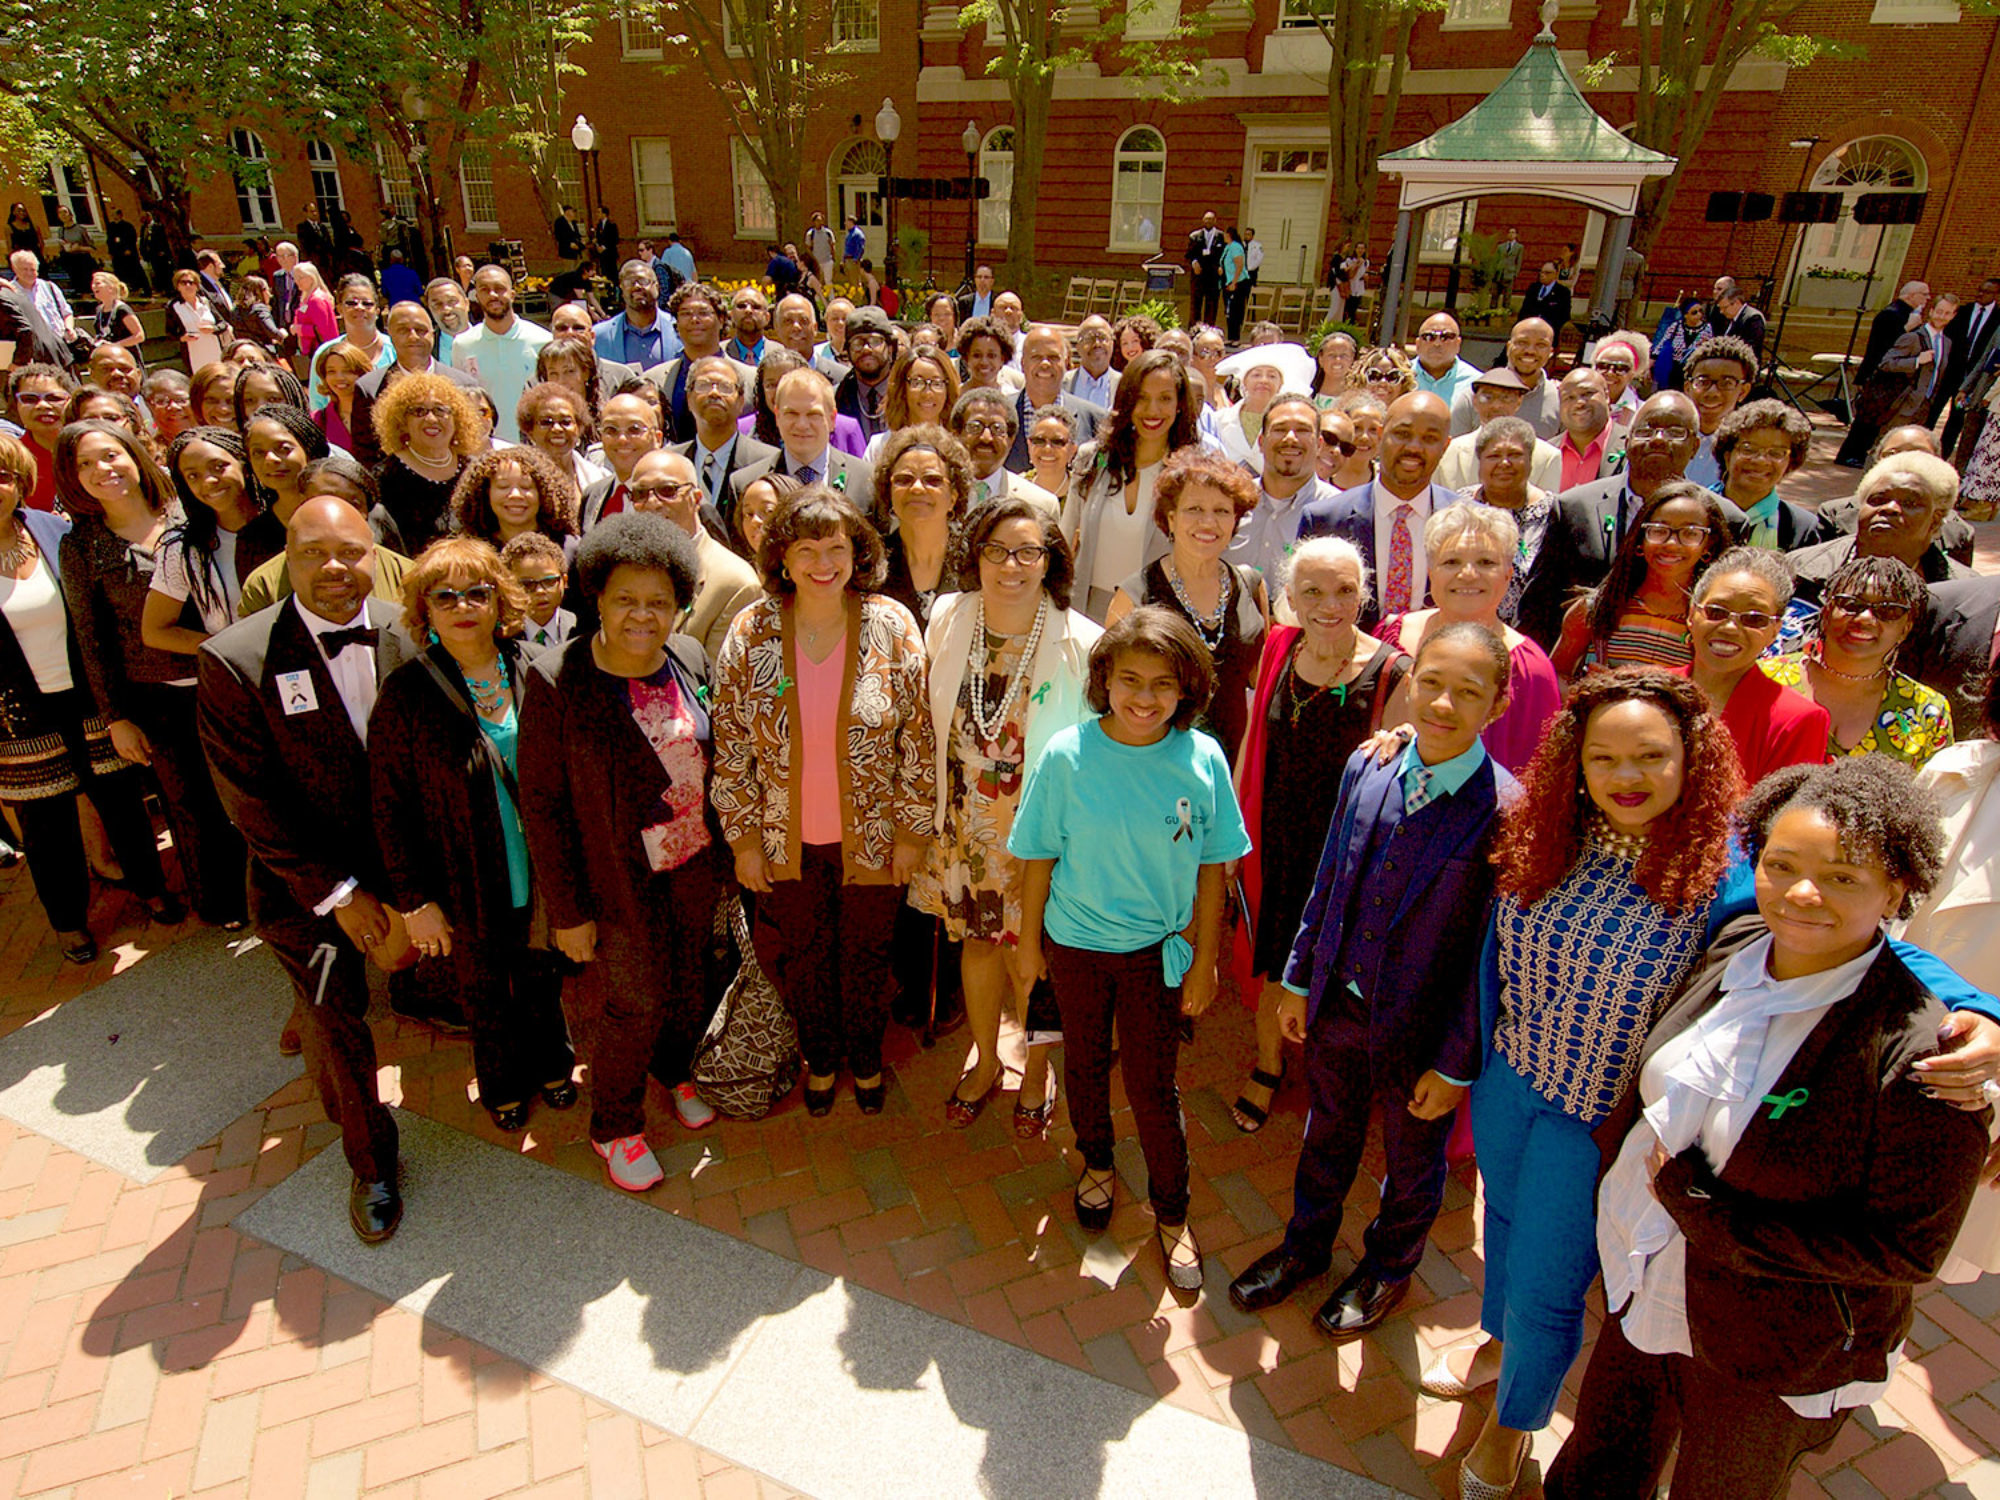 More than 150 descendants of the 272 enslaved individuals by the Maryland Jesuits.